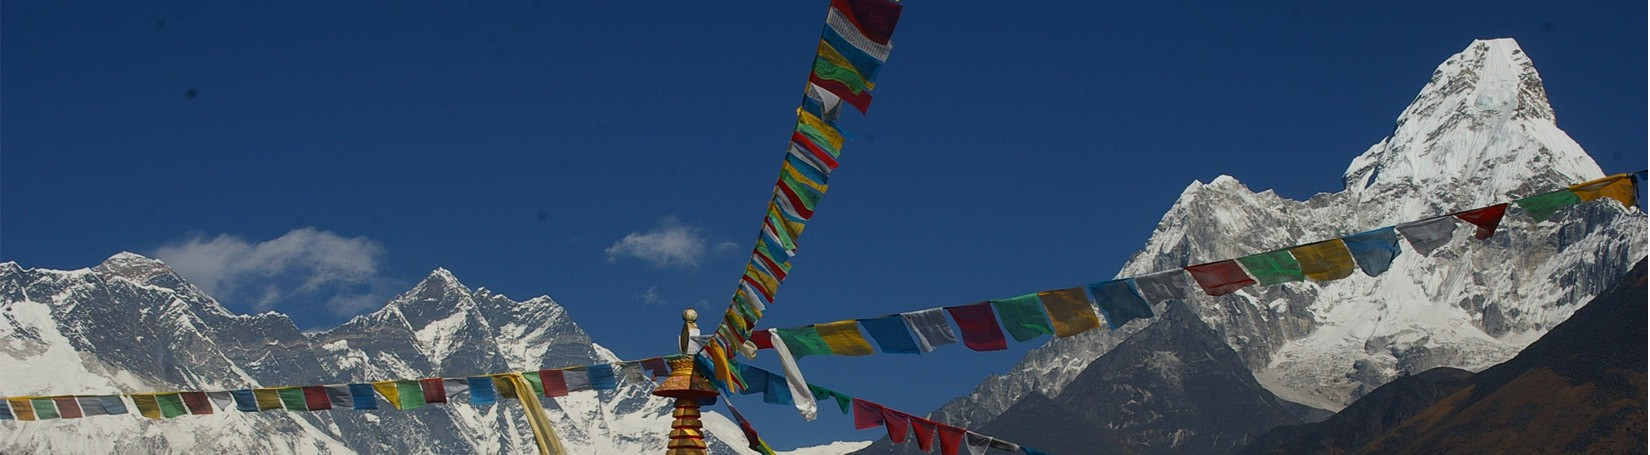 Mount Everest and Amadablam from Tengboche